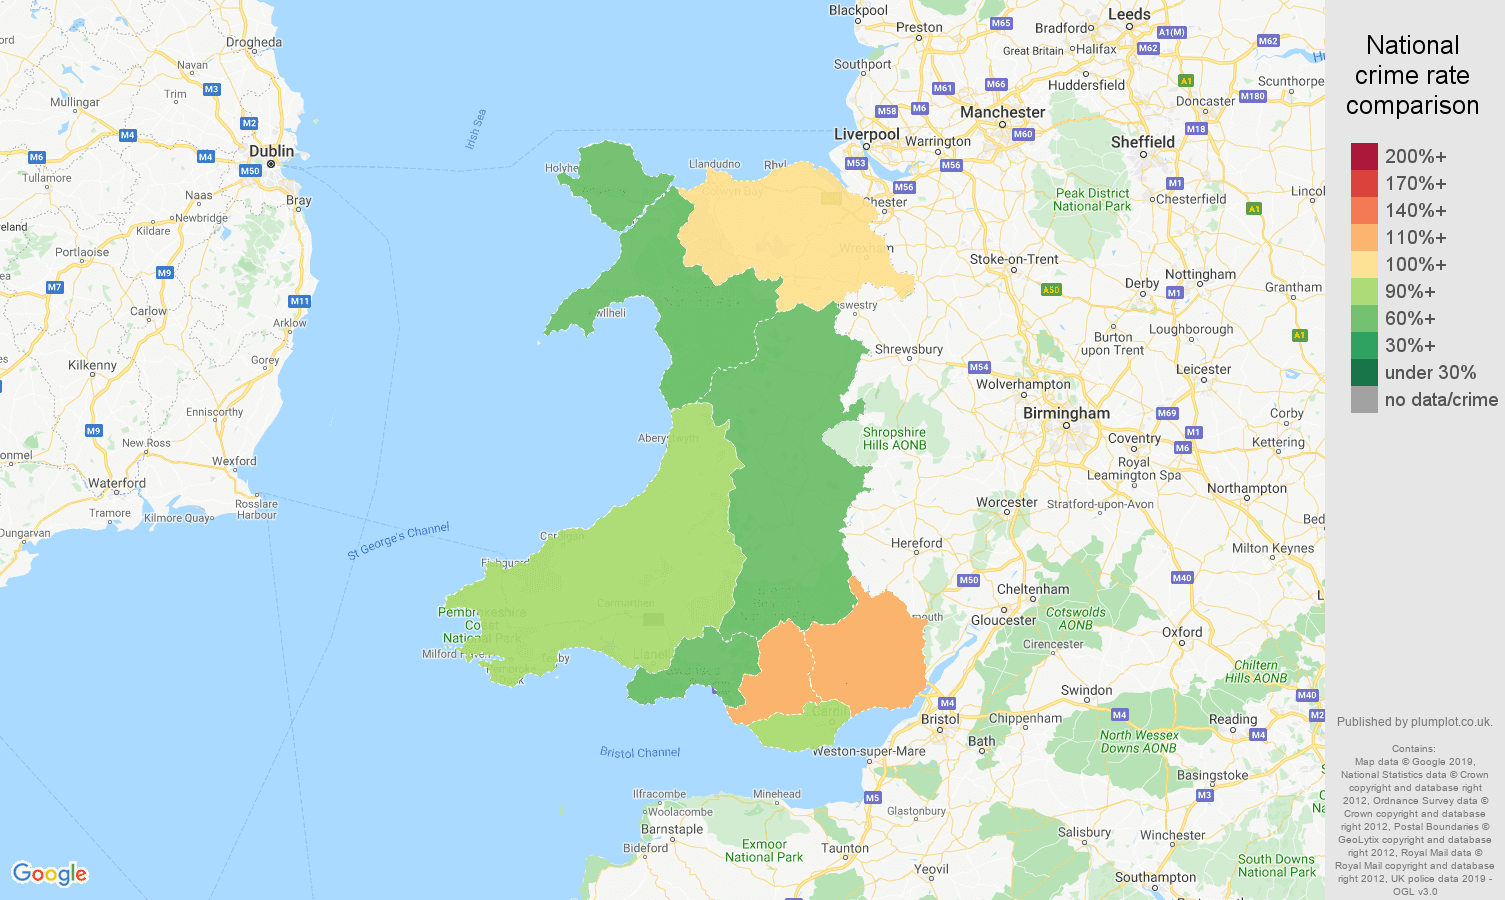 Wales other crime rate comparison map